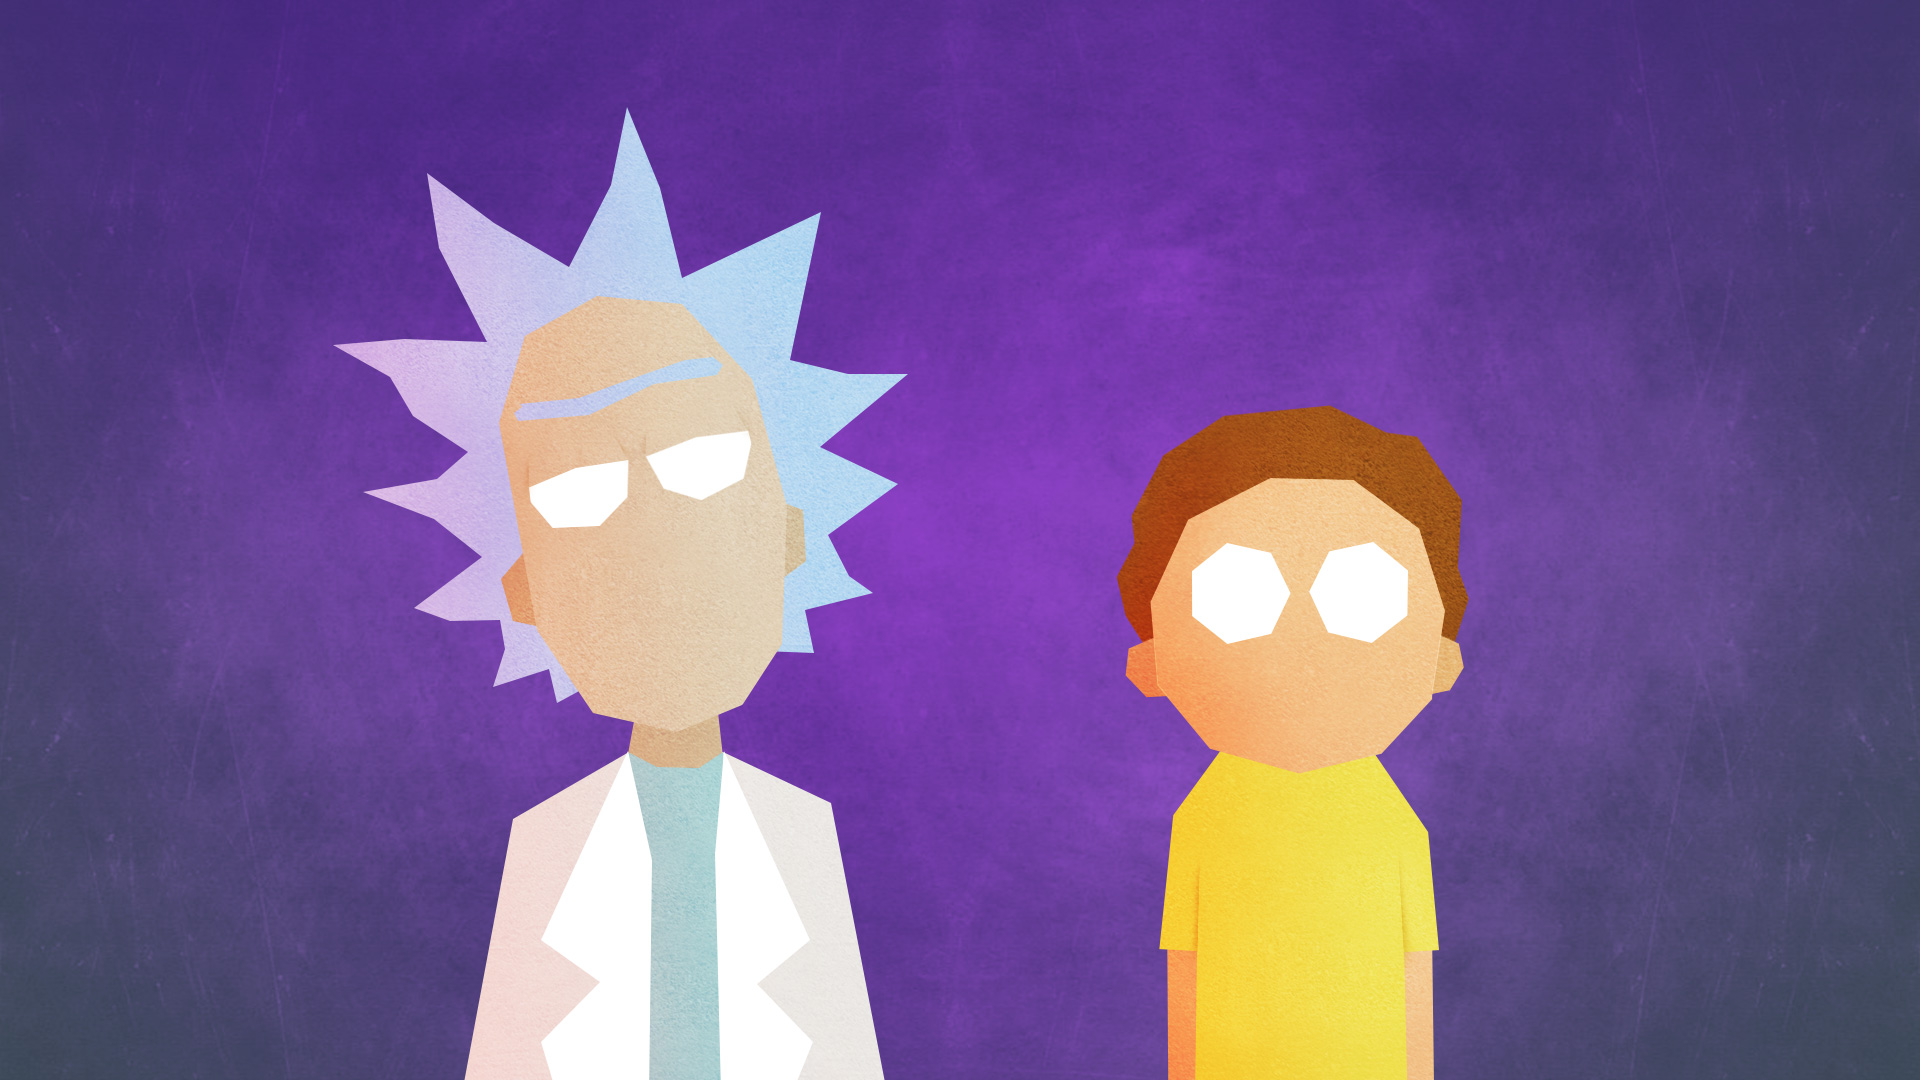 Best Of Wallpaper Hd 4k Rick And Morty Wallpaper